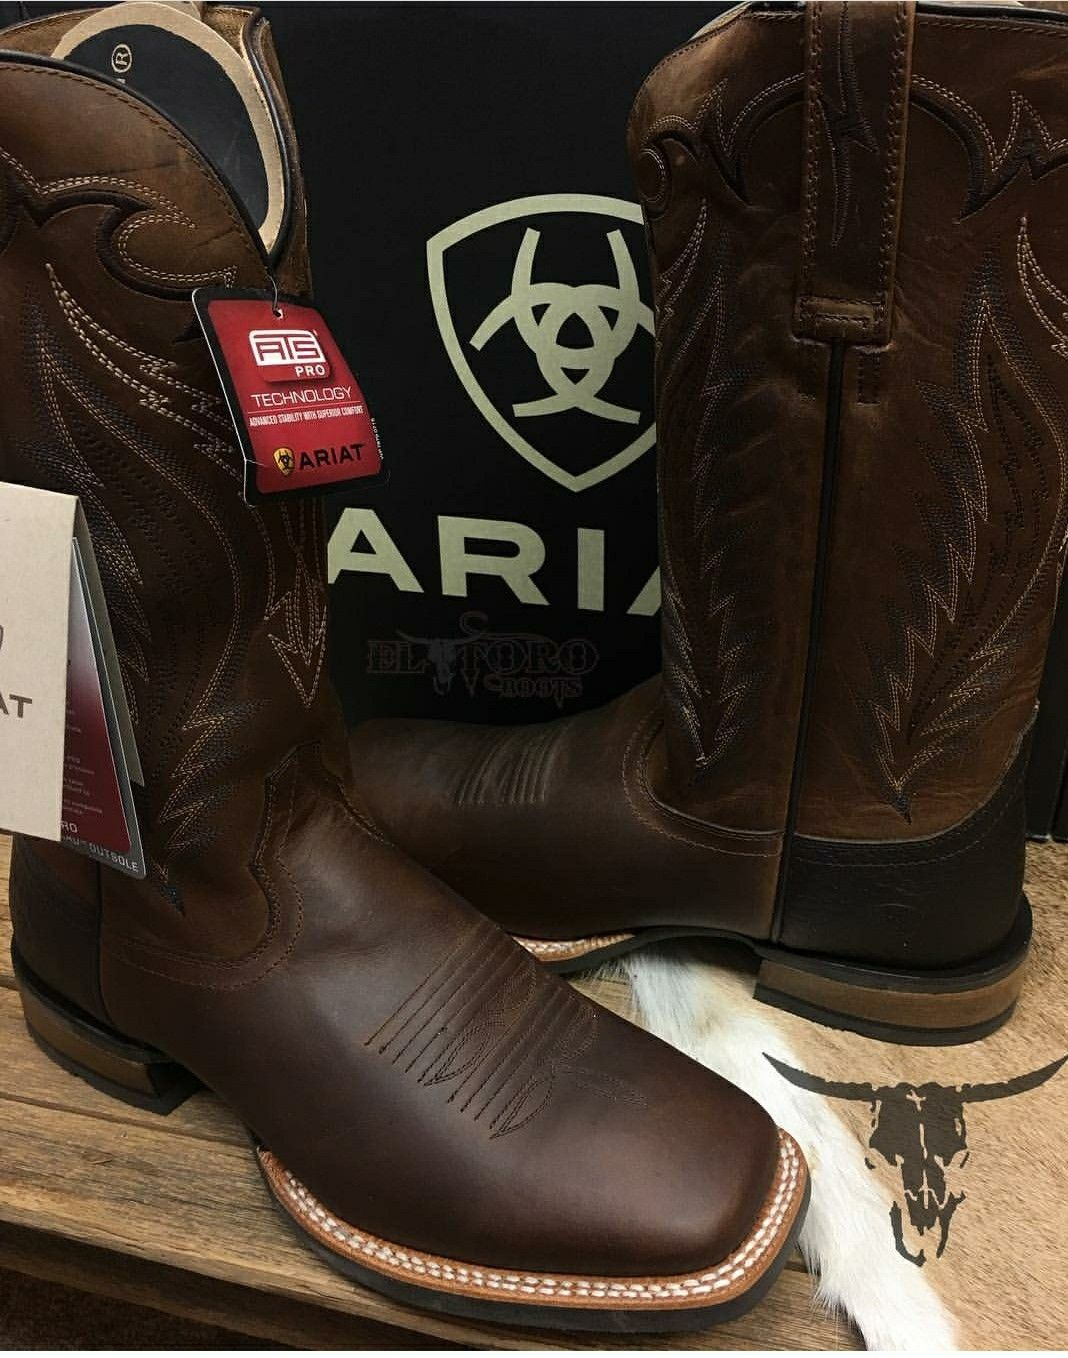 2975d845ca4 Pin by Dylan Ross on Boots and clothes in 2019 | Mens square toe ...